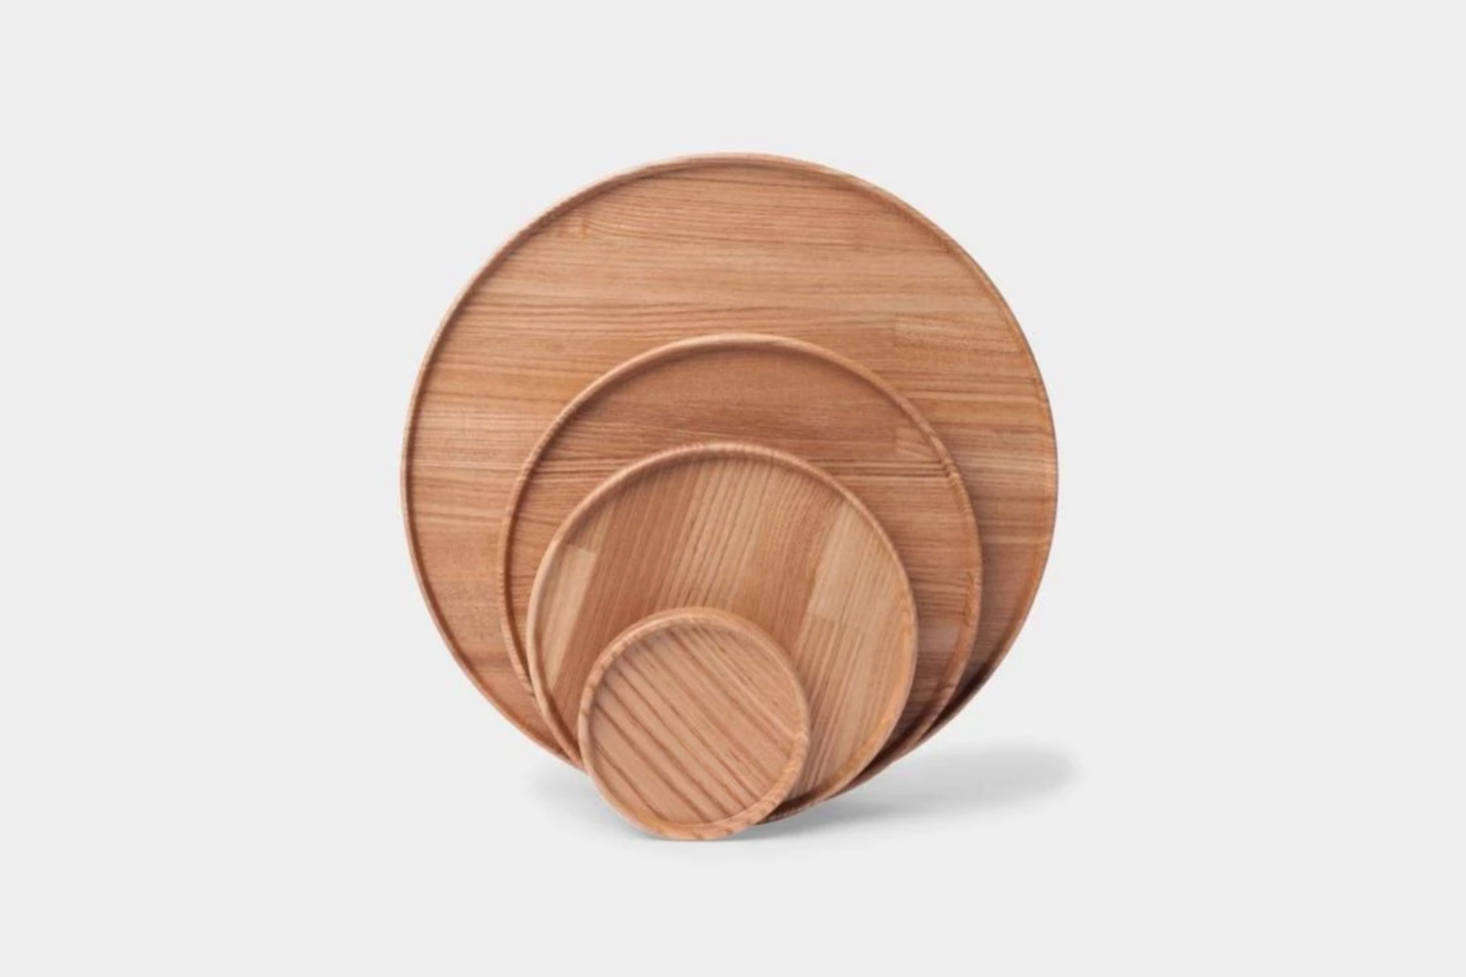 Light wood channels the brightness of the season. Alexa gathers her favorite wood trays in 10 Easy Pieces: Round Wood Trays, including these ash wood versions by Hasami.